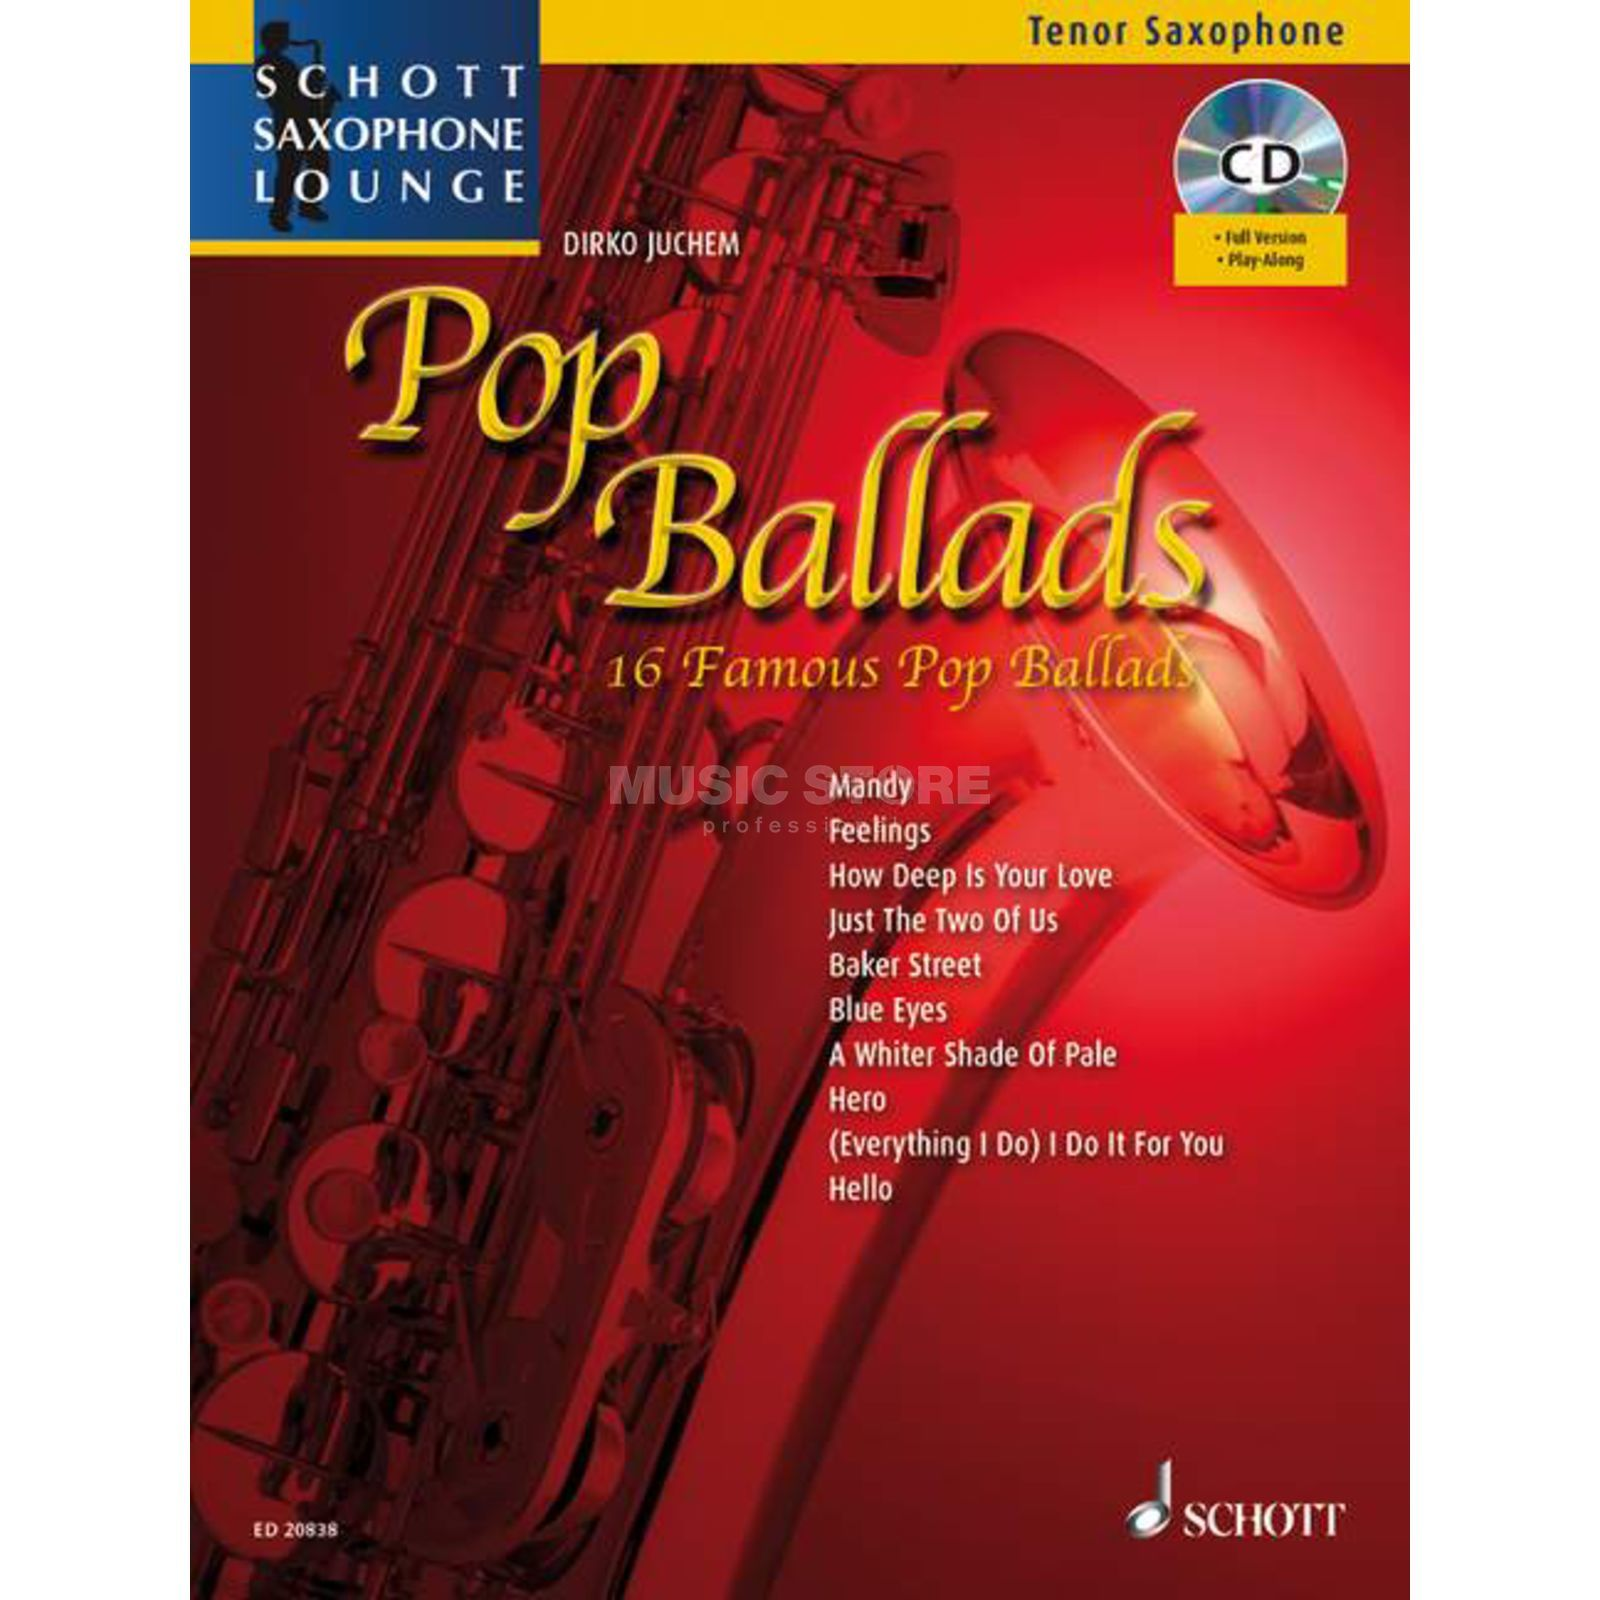 Schott Music Pop Ballads - Tenor-Sax Juchem, Buch/CD Product Image